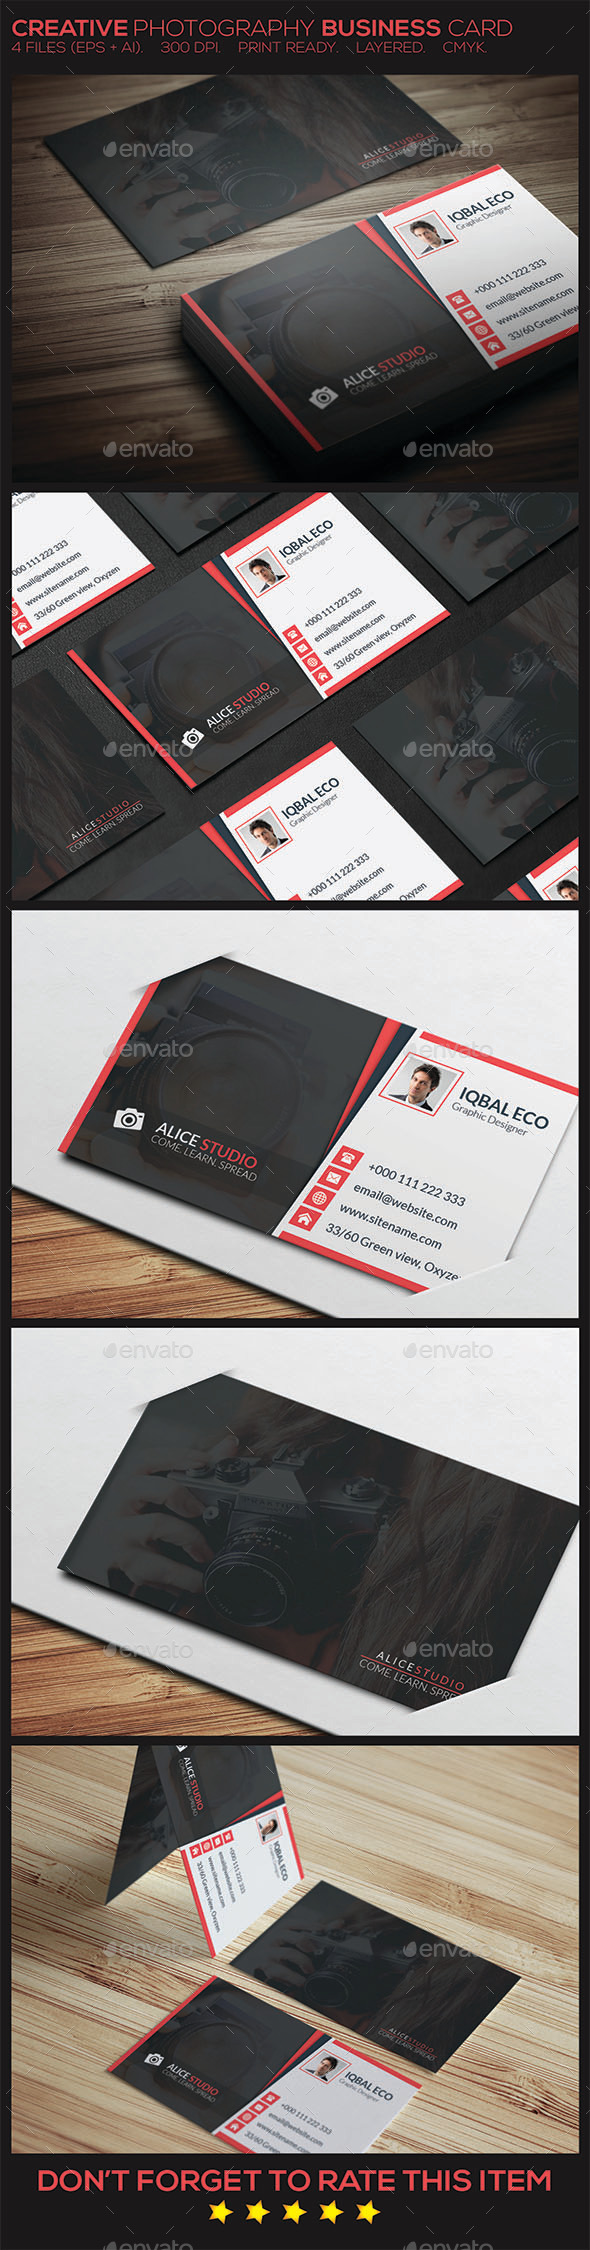 Creative Photography Business Card - Creative Business Cards